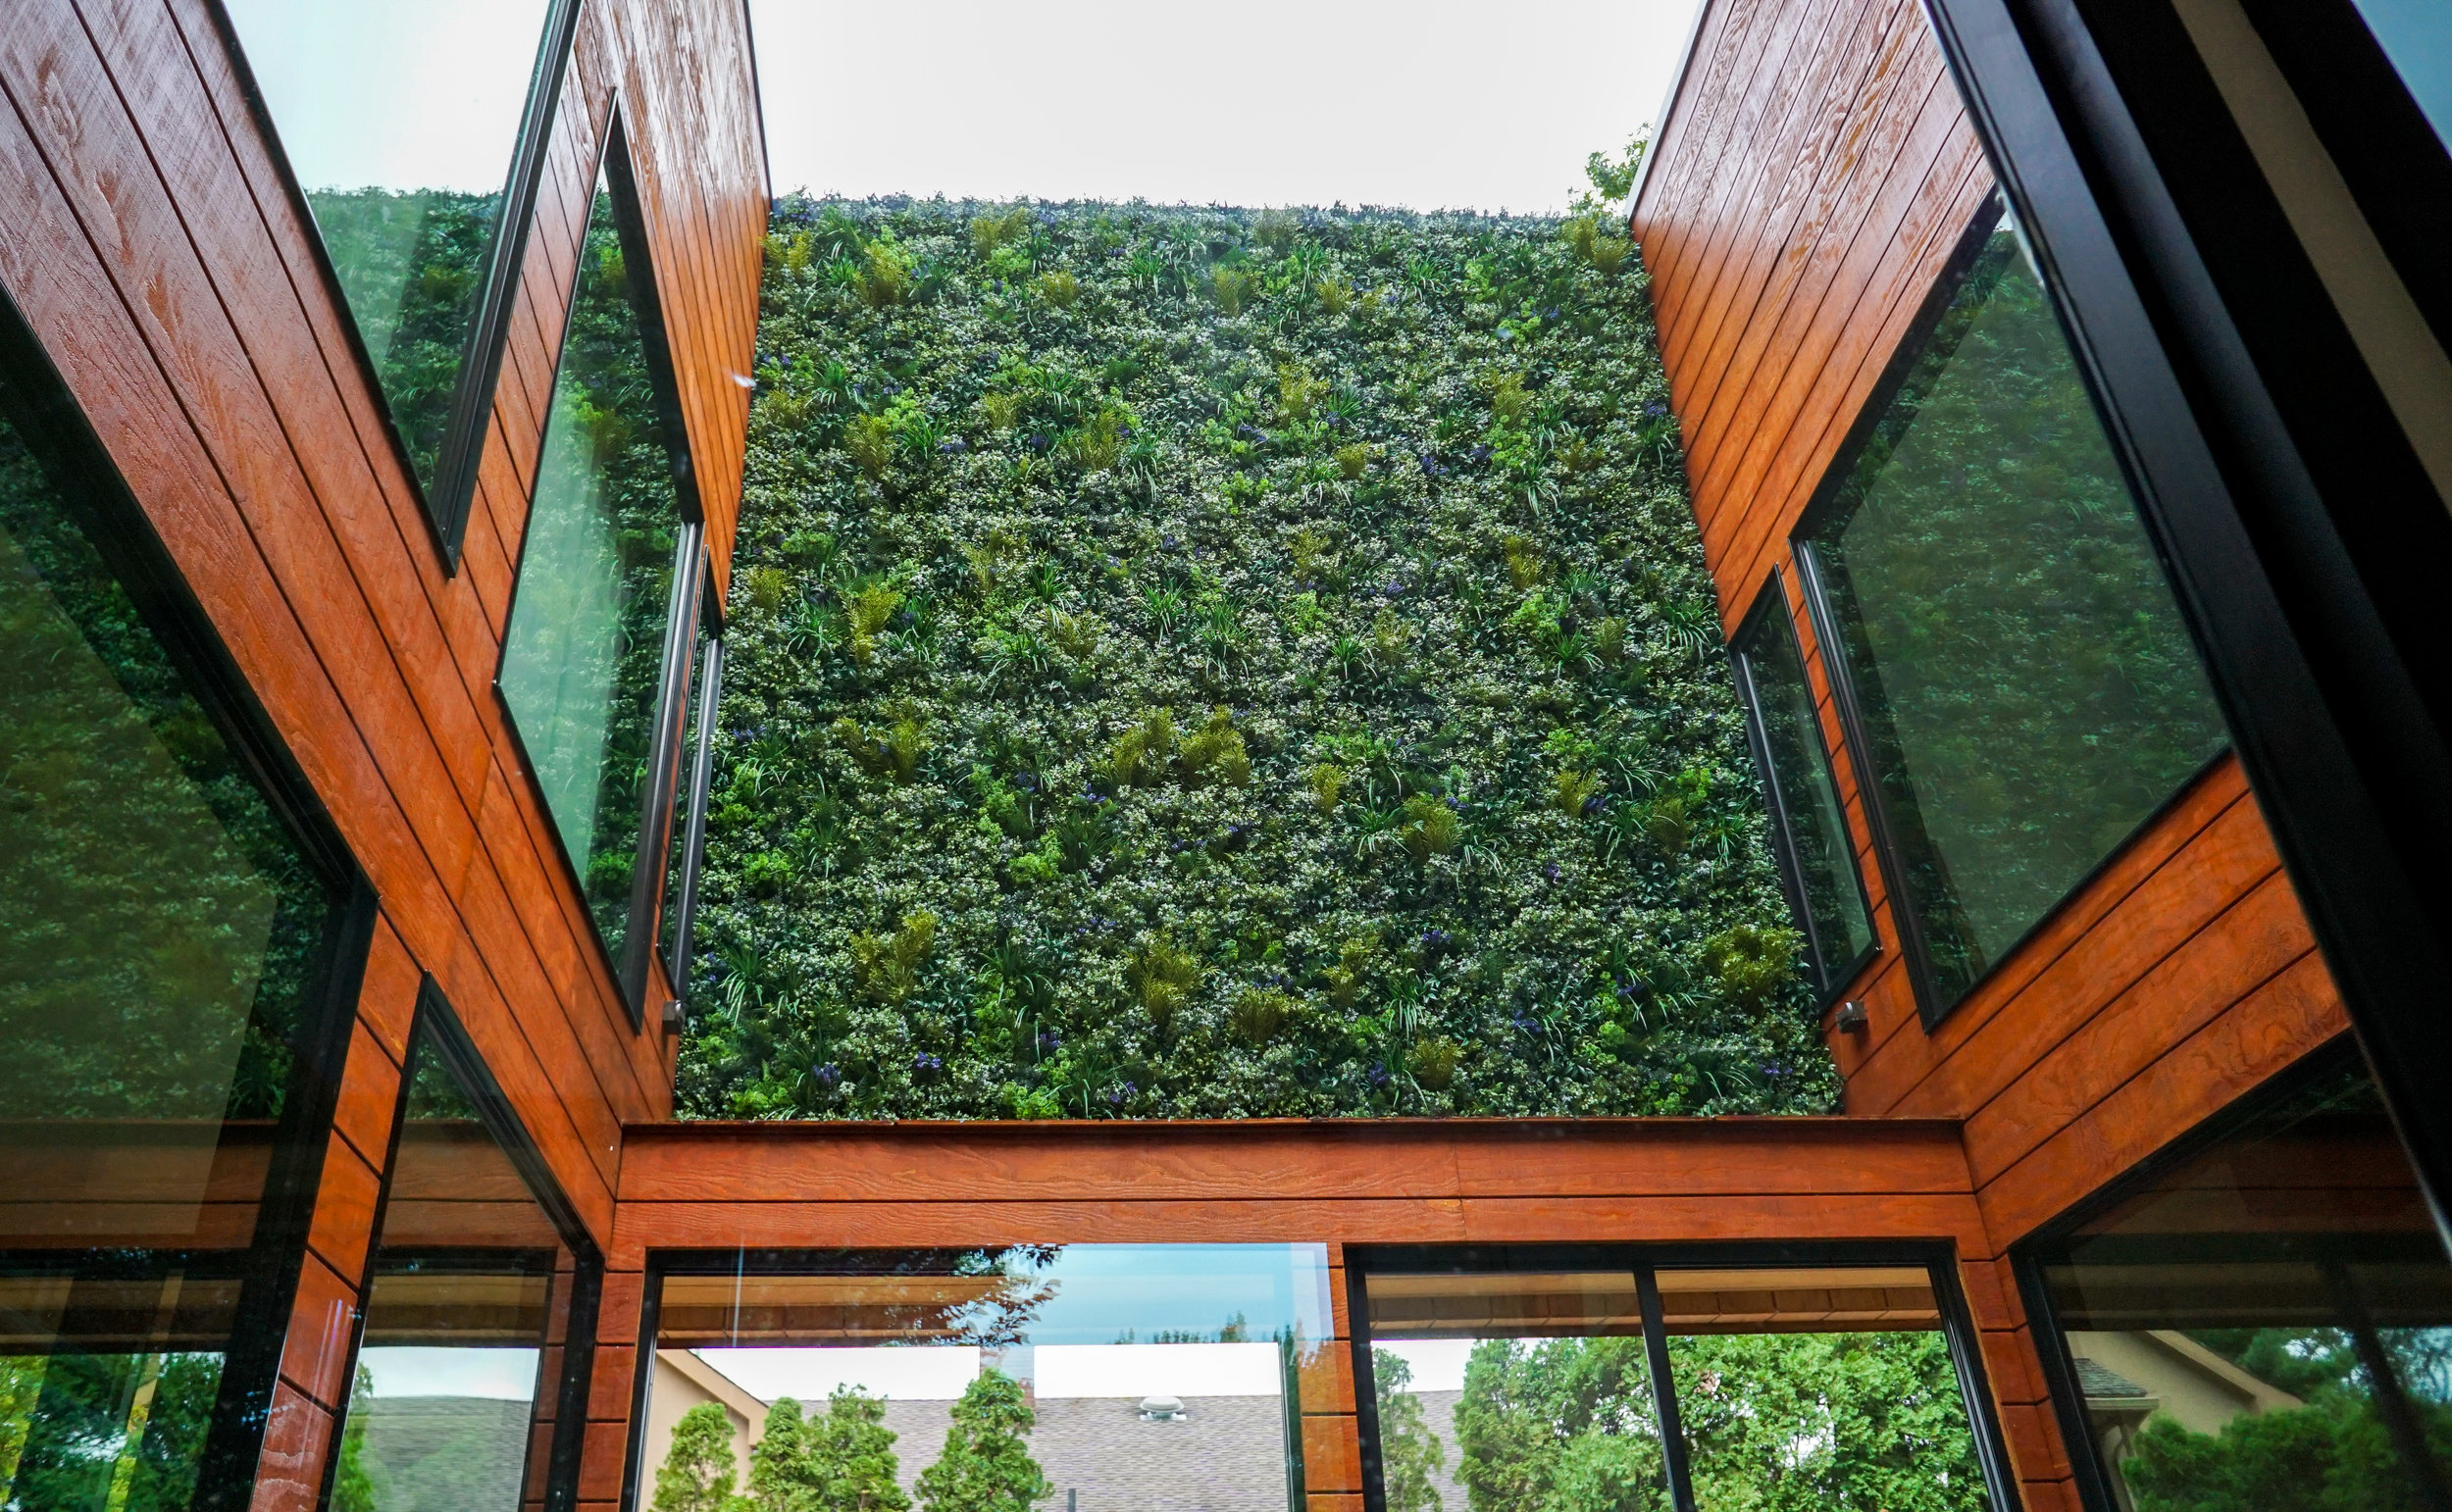 ALW Installation at a Home in NY  An artificial living wall in an indoor/outdoor atrium in Staten Island, NY. Artificial plants were the perfect solution for this project since they will stay vibrant year-round and be resistant to the elements.